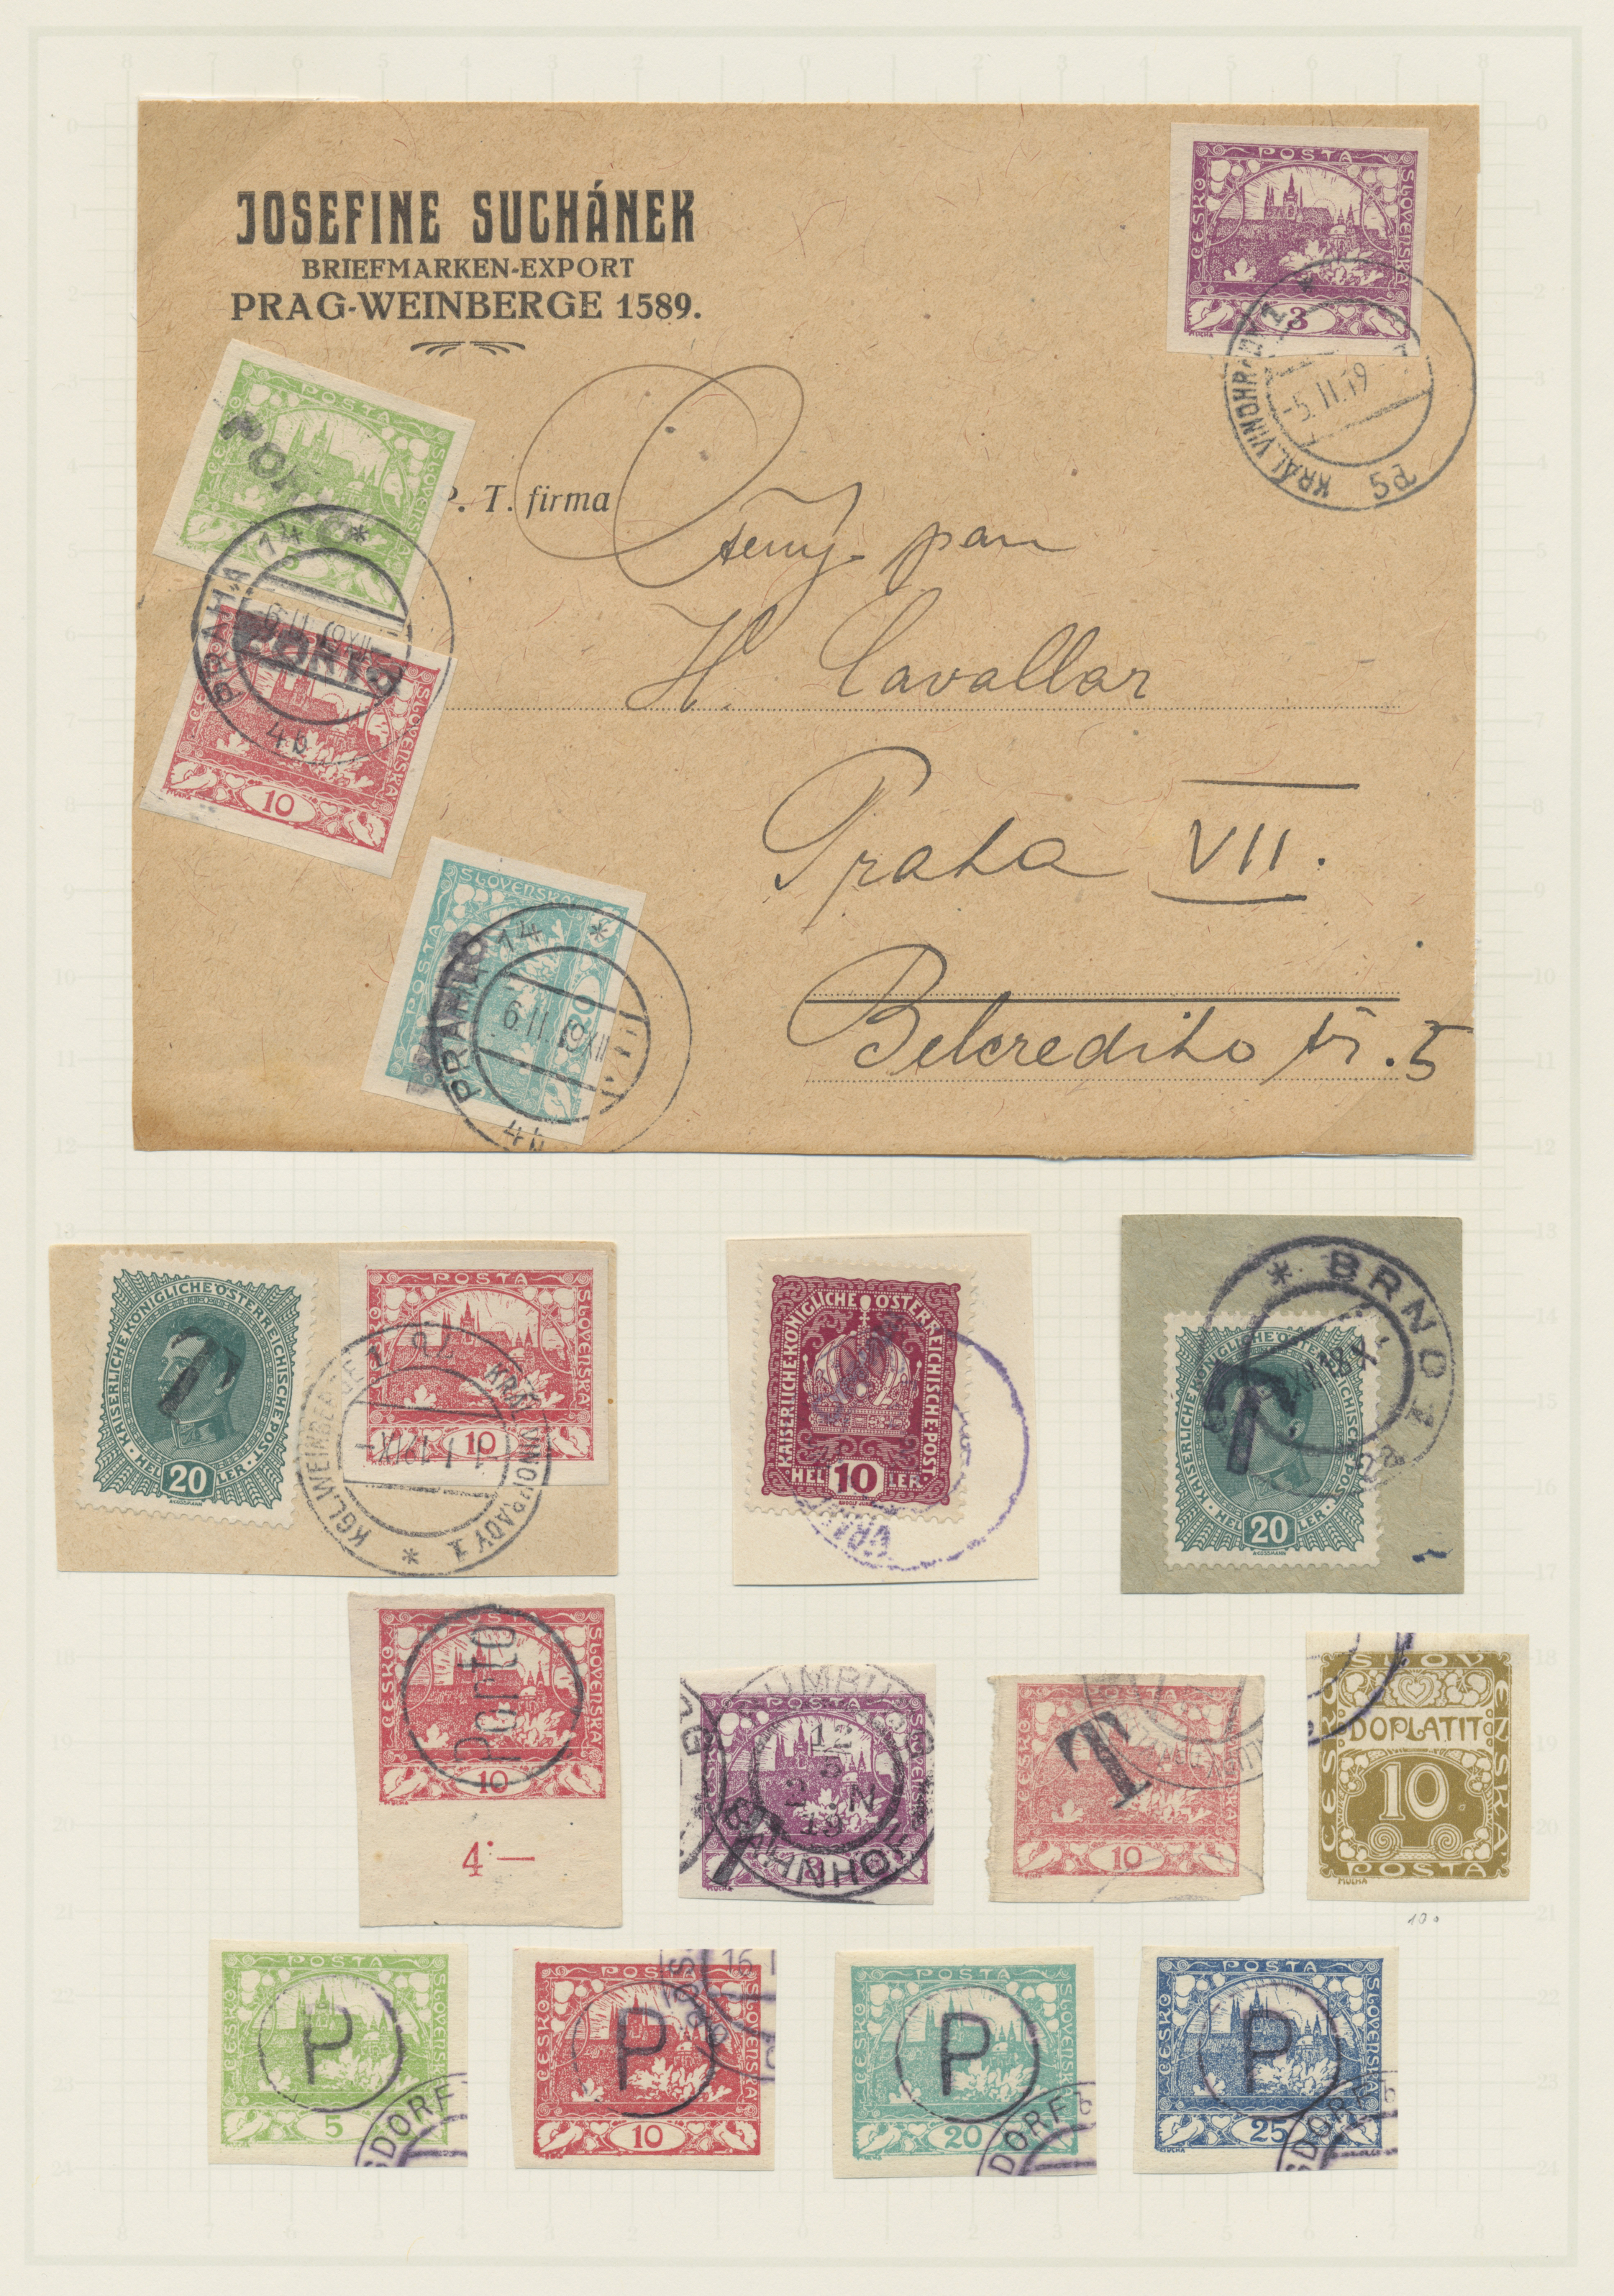 Lot 27300 - tschechoslowakei  -  Auktionshaus Christoph Gärtner GmbH & Co. KG Sale #46 Gollcetions Germany - including the suplement